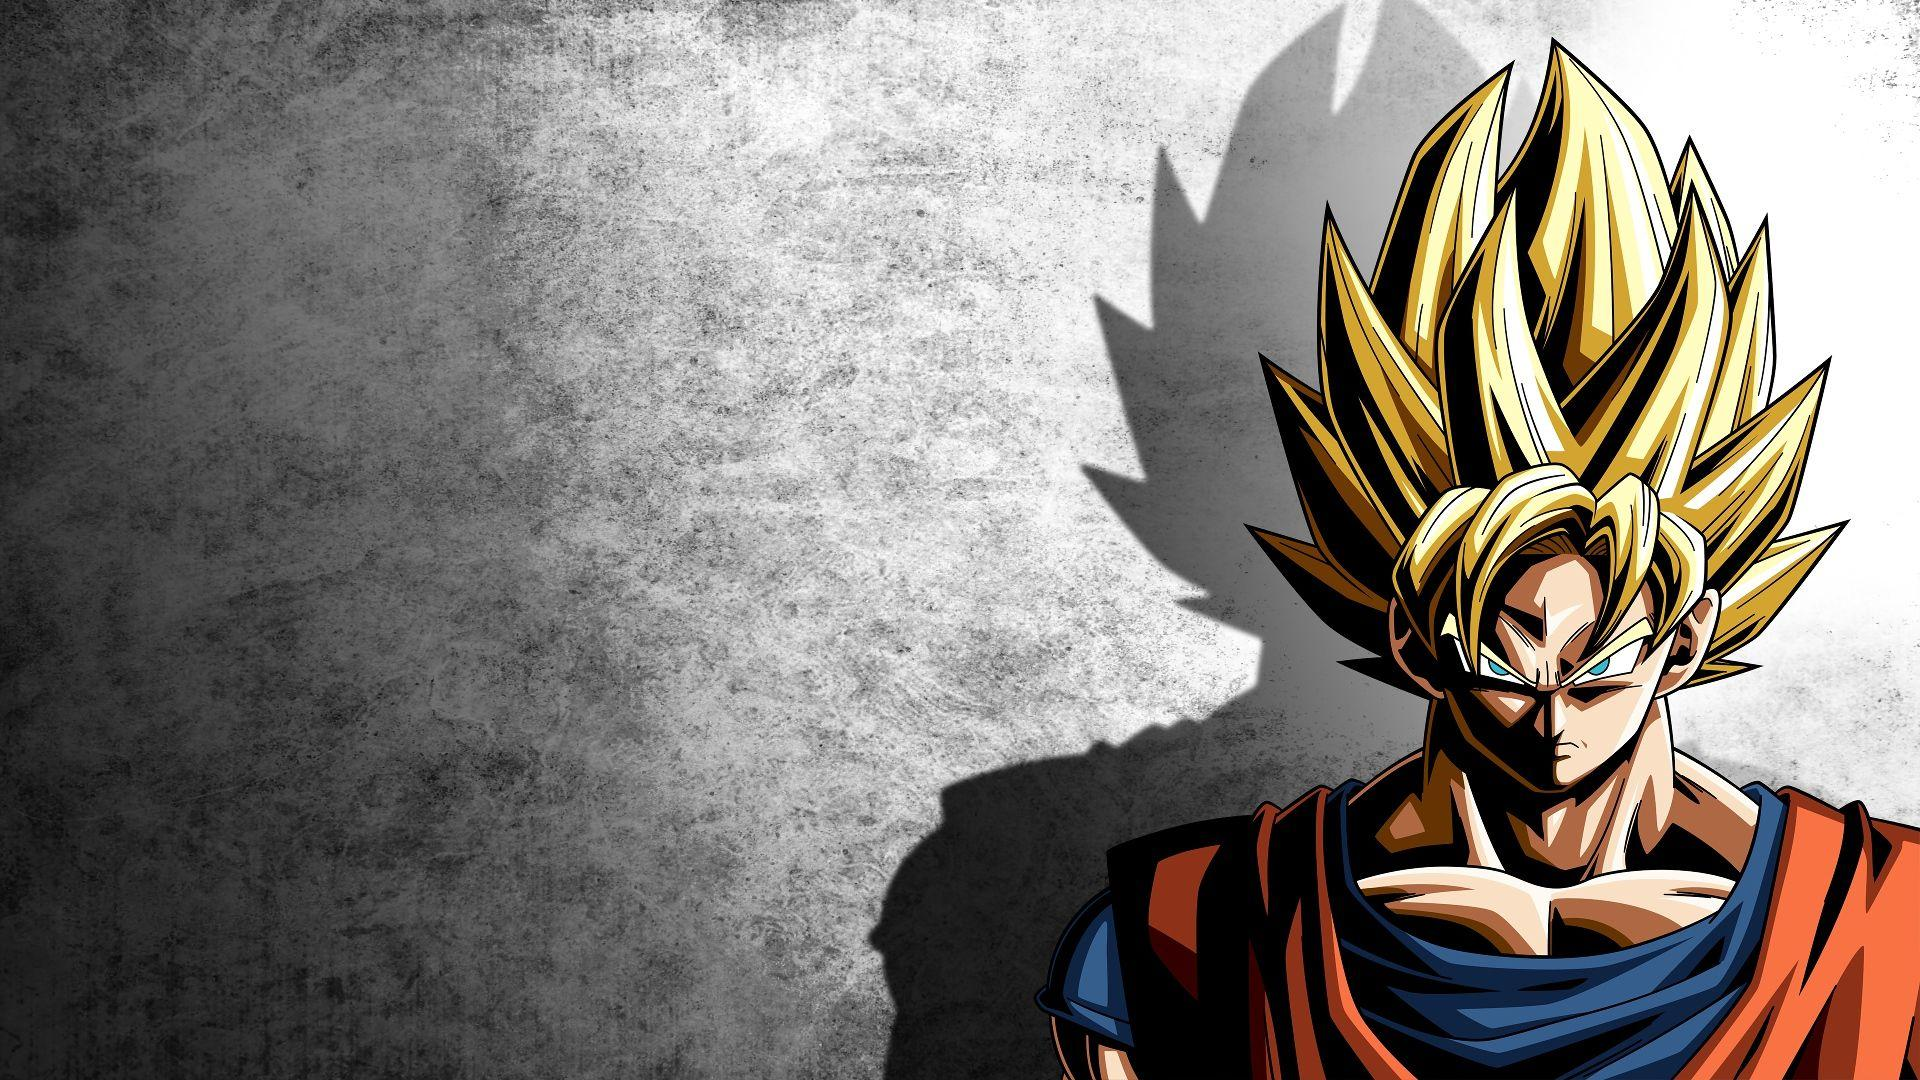 Download a Goku HD Picture design For a Cooler